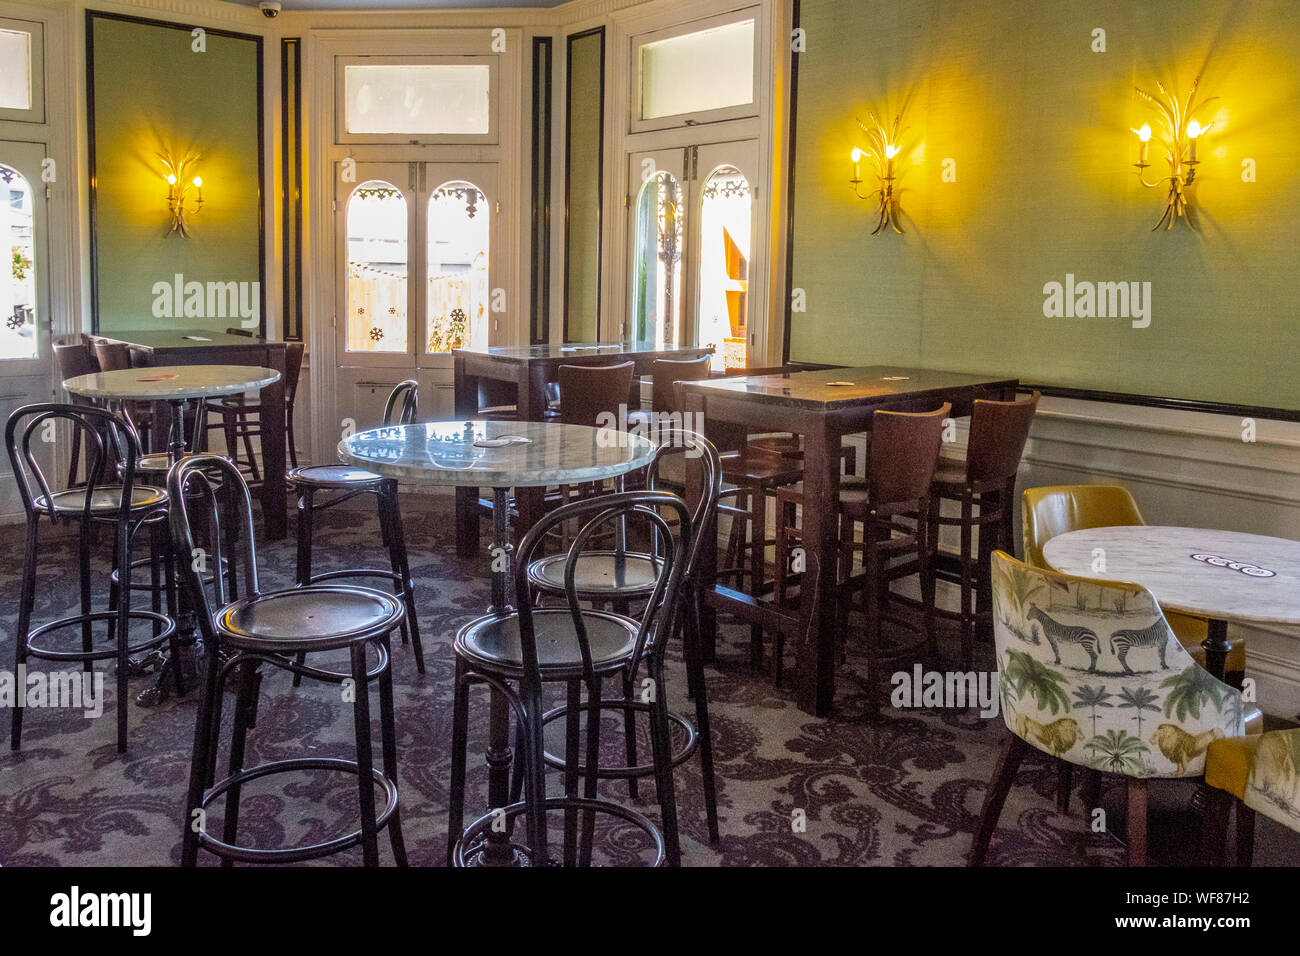 The Royal Hotel Paddington, Sydney, NSW, Australia. Polished hangout with a ground-floor pub, upstairs restaurant and a rooftop bar with city views. Stock Photo